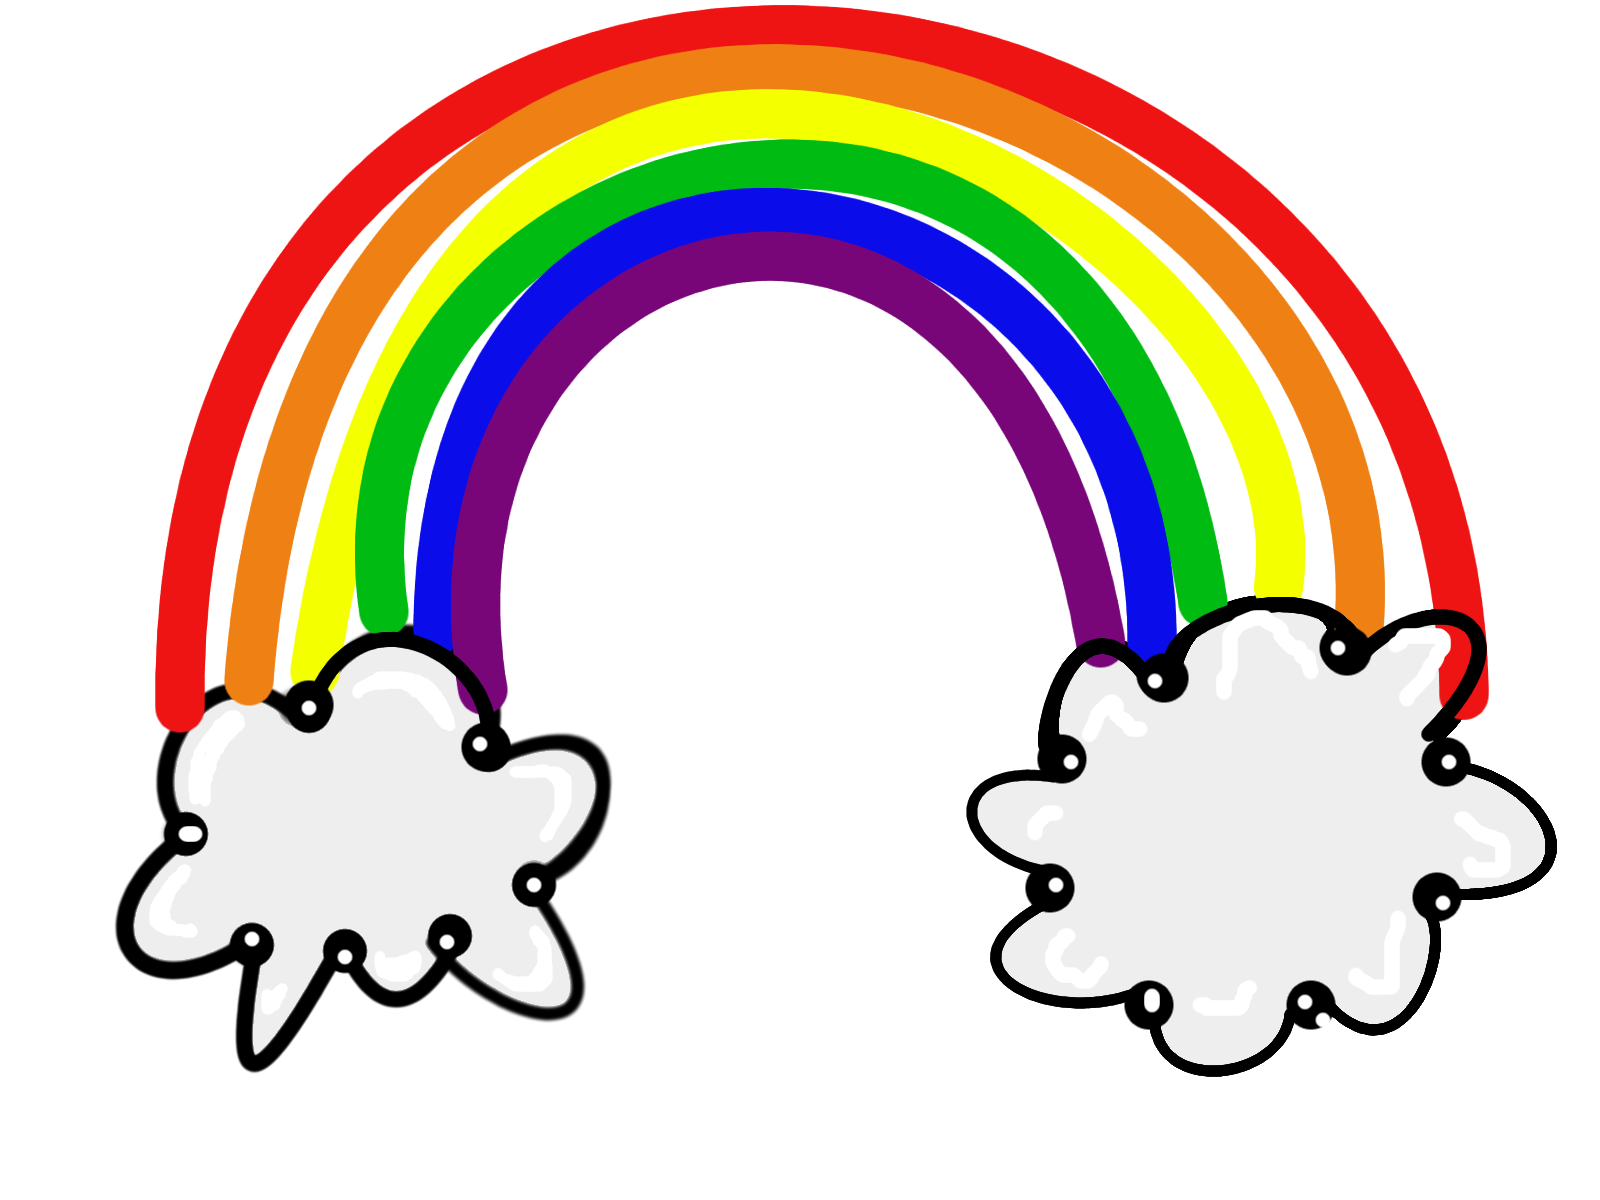 clip royalty free library Rainbow clipart for kids. Free cliparts download clip